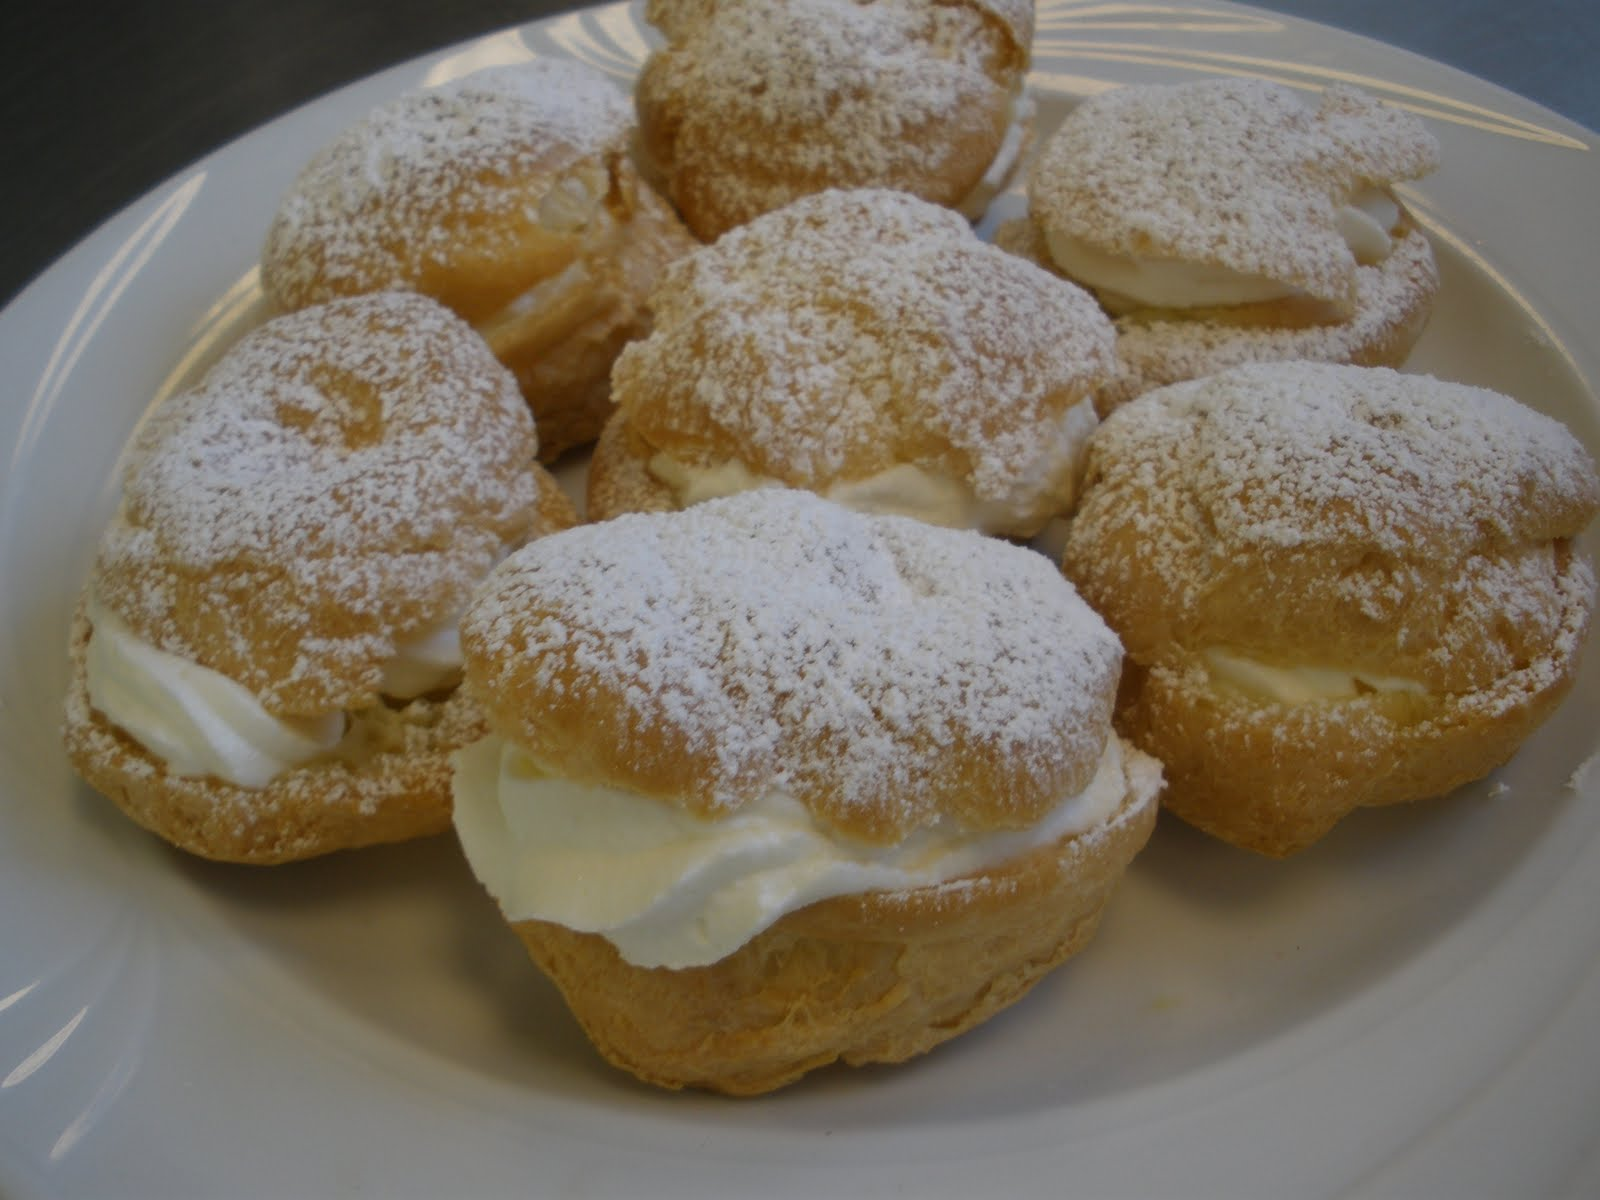 RomAna Catering: PATE-A-CHOUX WITH CREME CHANTILLY!